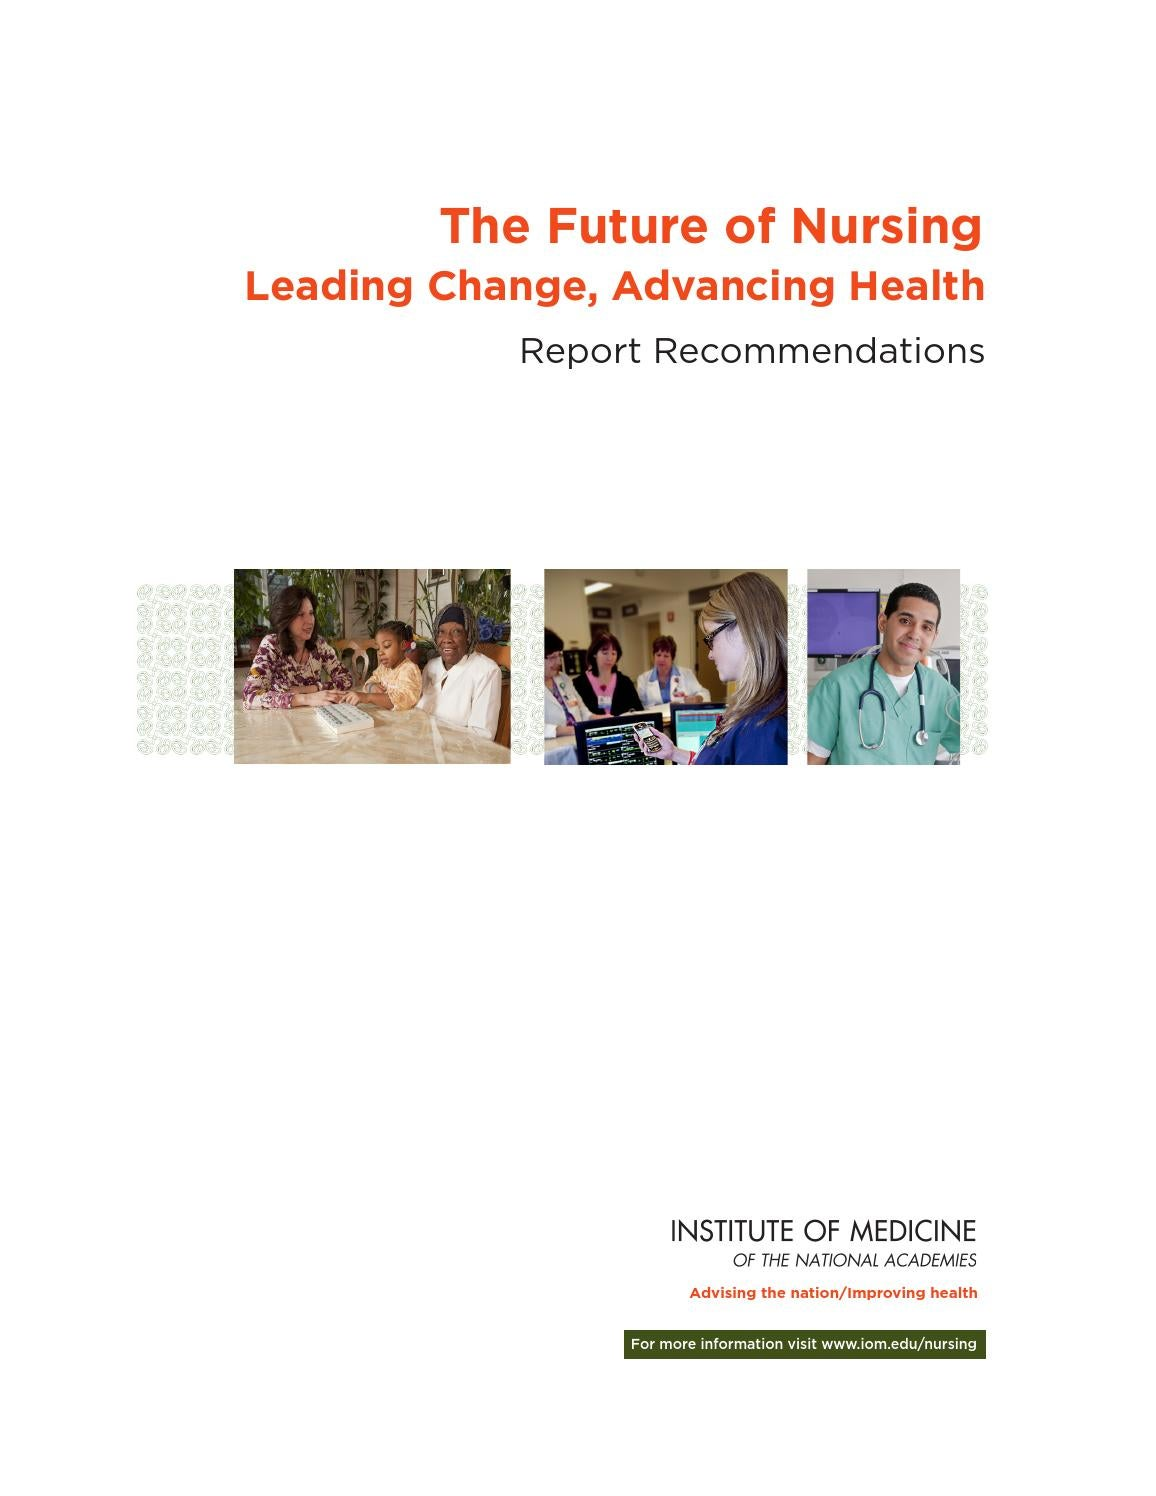 iom report on nursing education practice Impact of iom report on nursing essay important the institute of medicine report discusses so many aspects in nursing but this paper requires detailing the impacts on nursing practice (transforming practice), nursing education (transforming education), and the nurse's role as a leader (transforming leadership.